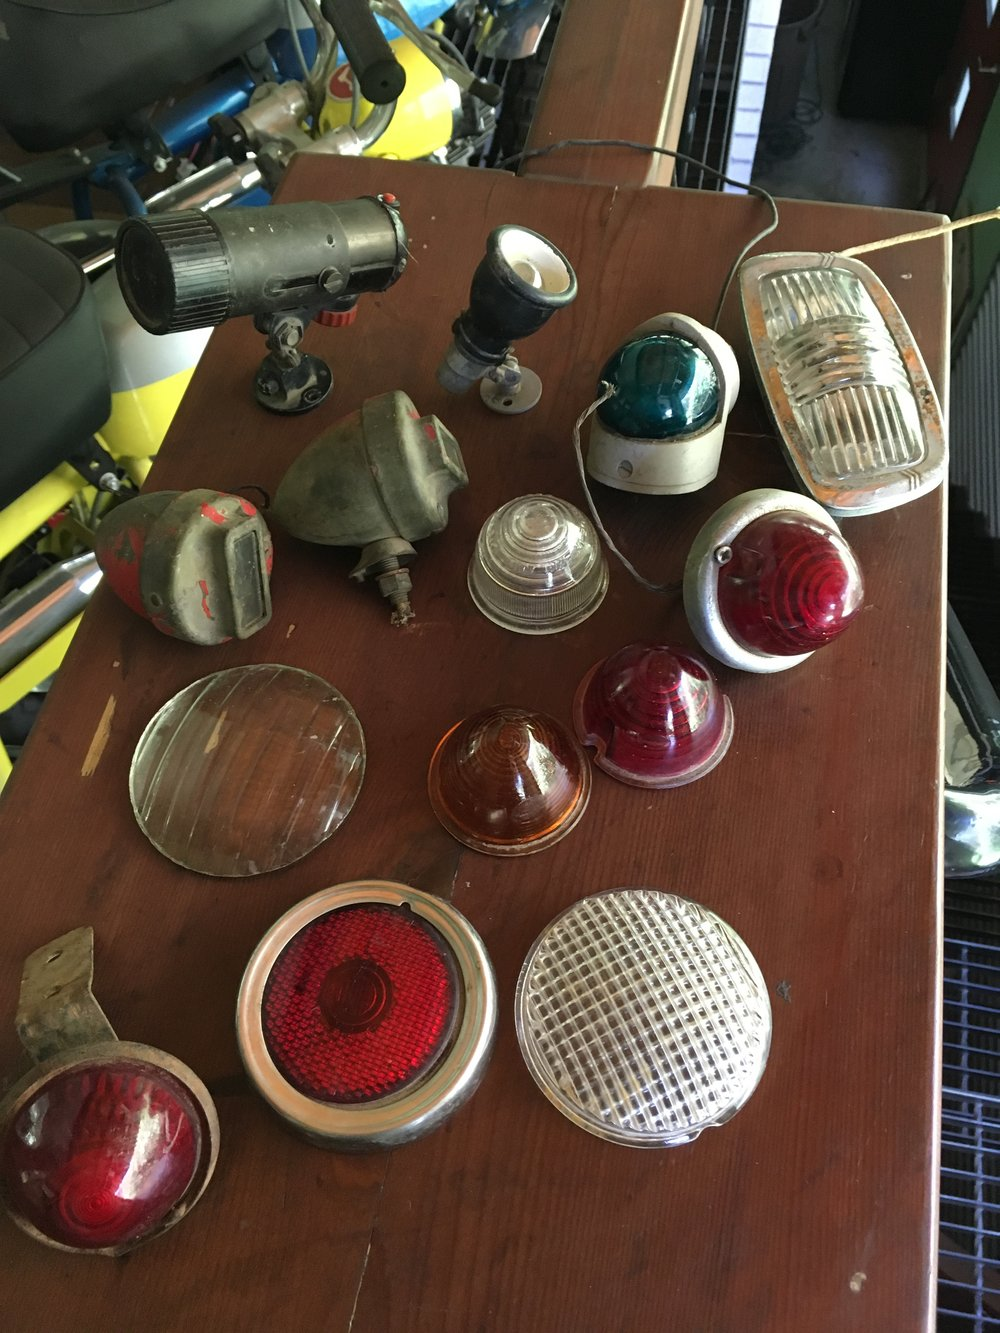 In other happenings, a lot of vintage tail and other type light came in. Pictured are some of the glass lens ones that got cleaned up a little. A few are US navy and other aircraft, with car and motorcycle units making up the bulk of the collection. A guy who looked to be somewhere near 70 told me they were collected by his Daddy.